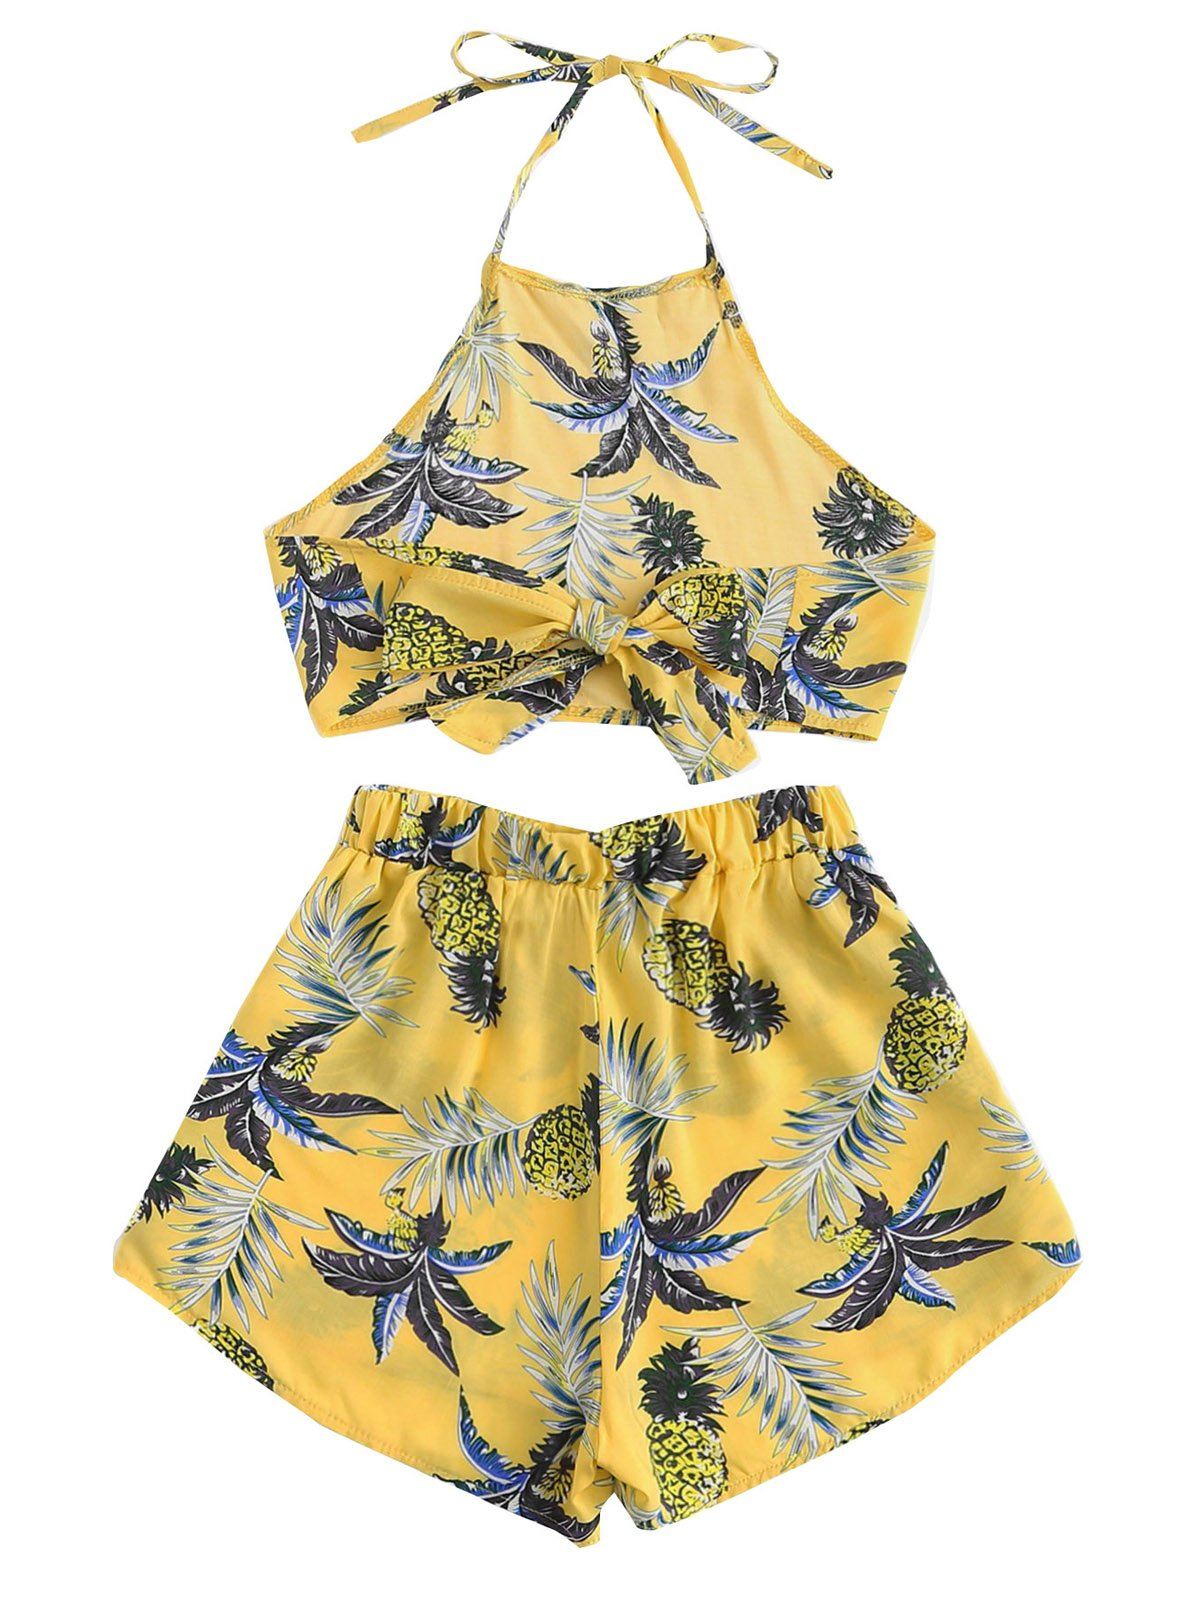 July A Women's 2 Piece Outfits Halter Sleeveless Crop Cami Top and Shorts Set Yellow S by July A (Image #2)